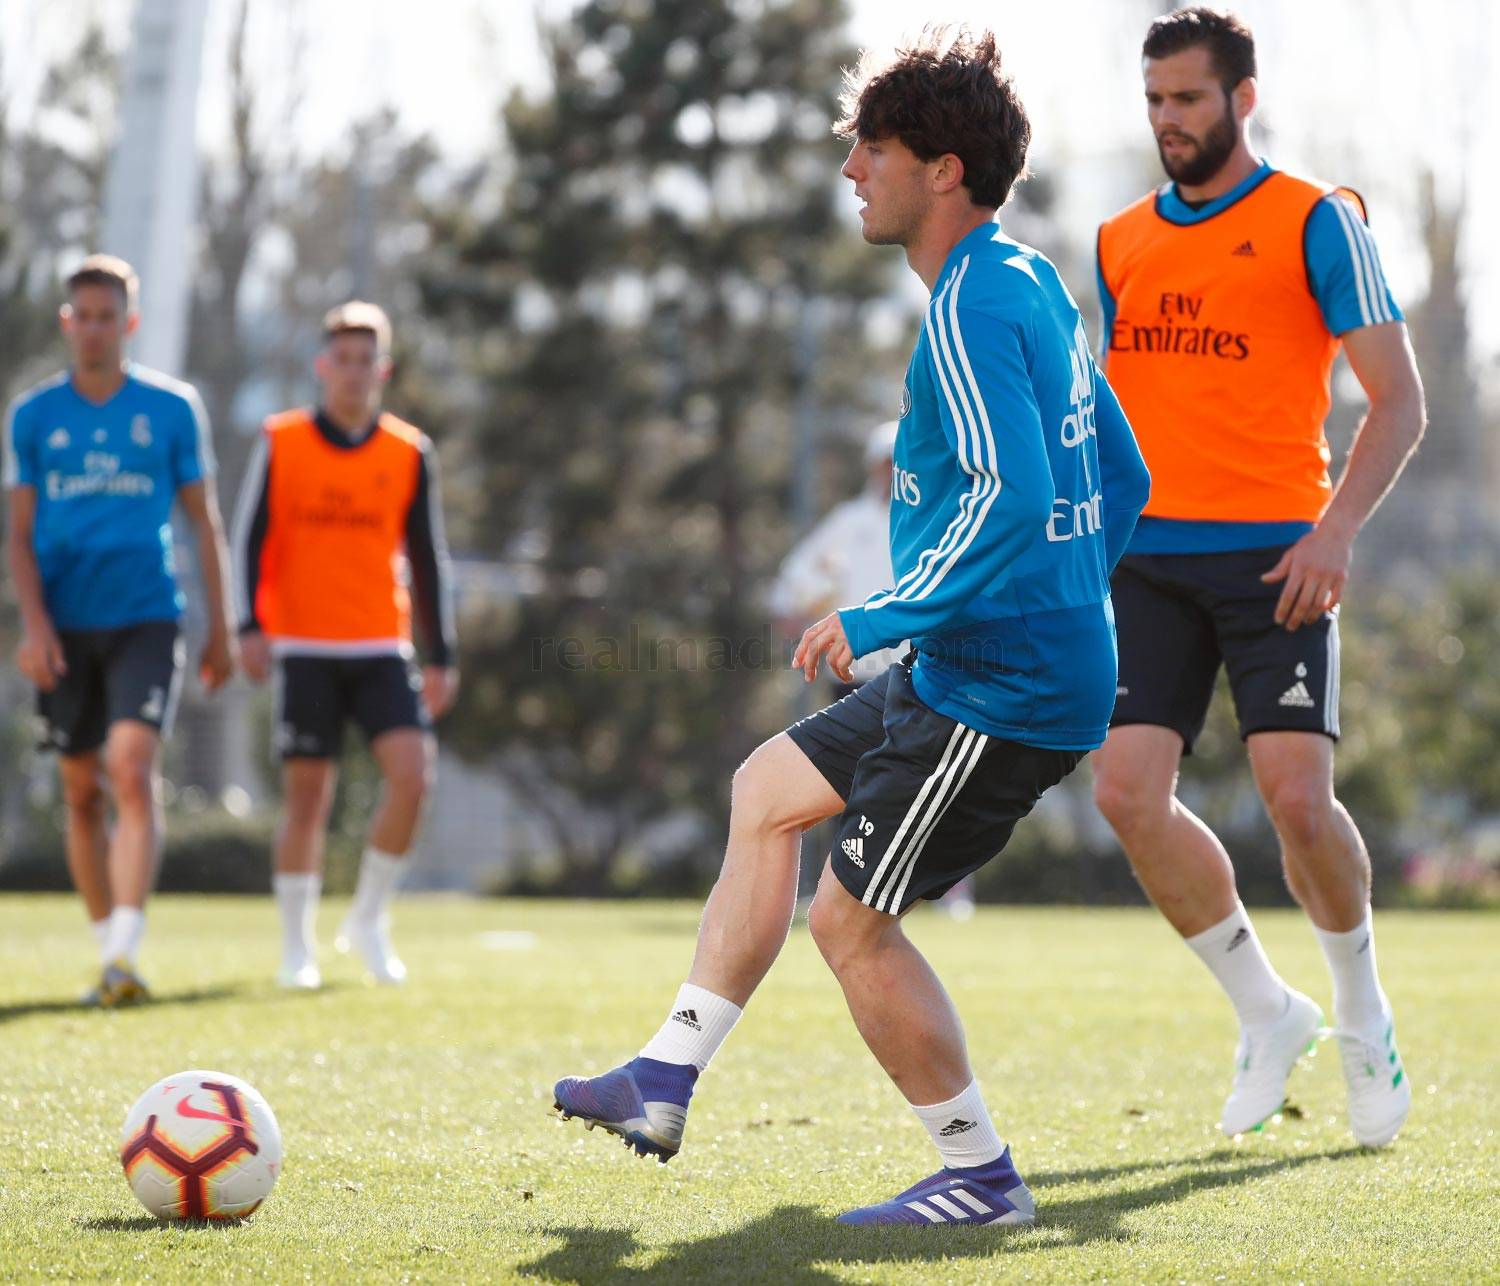 Real Madrid - Entrenamiento del Real Madrid - 26-03-2019